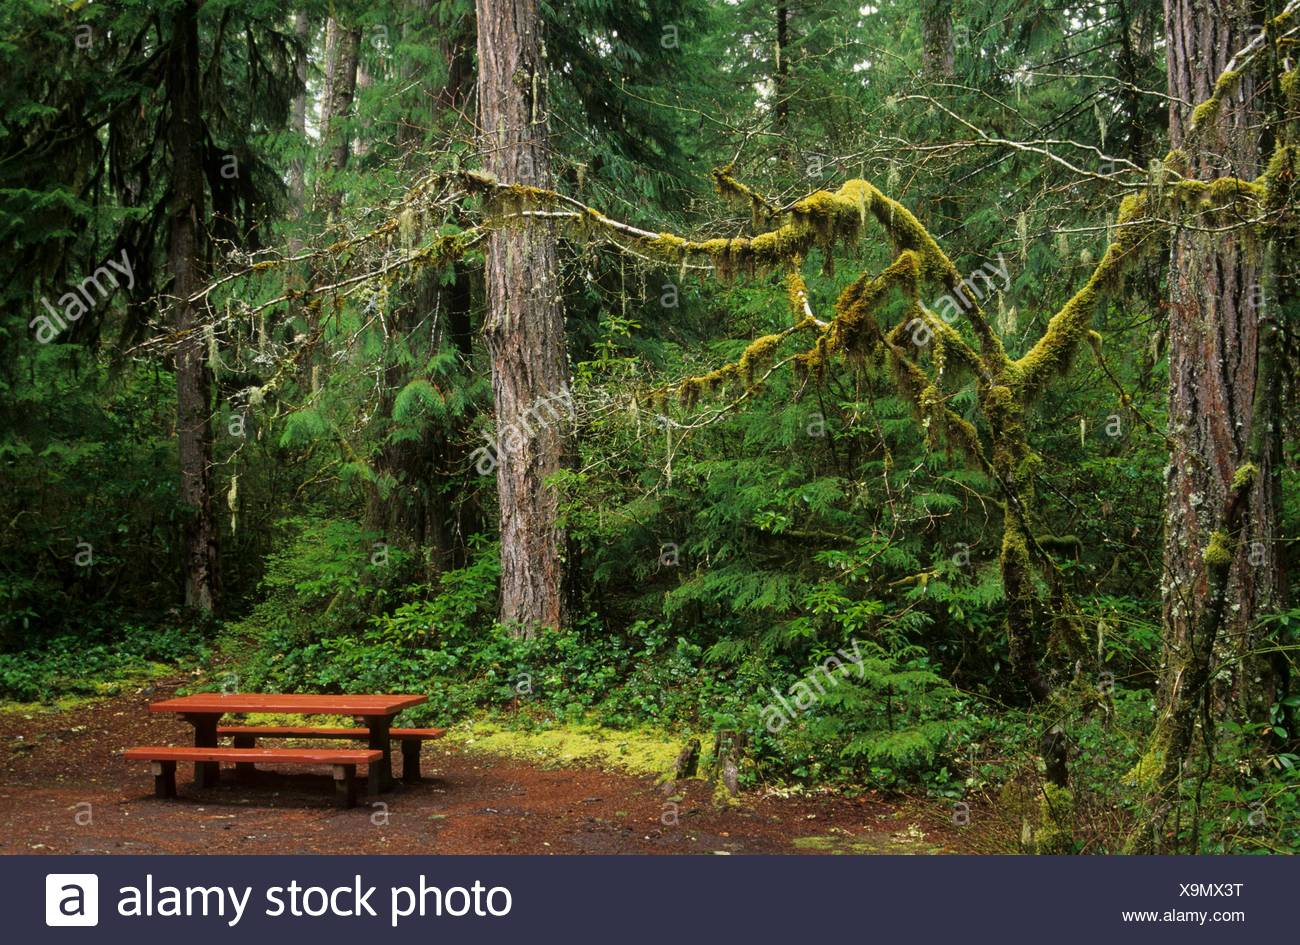 Picnic table in Humbug Campground, Willamette National Forest, Oregon. - Stock Image